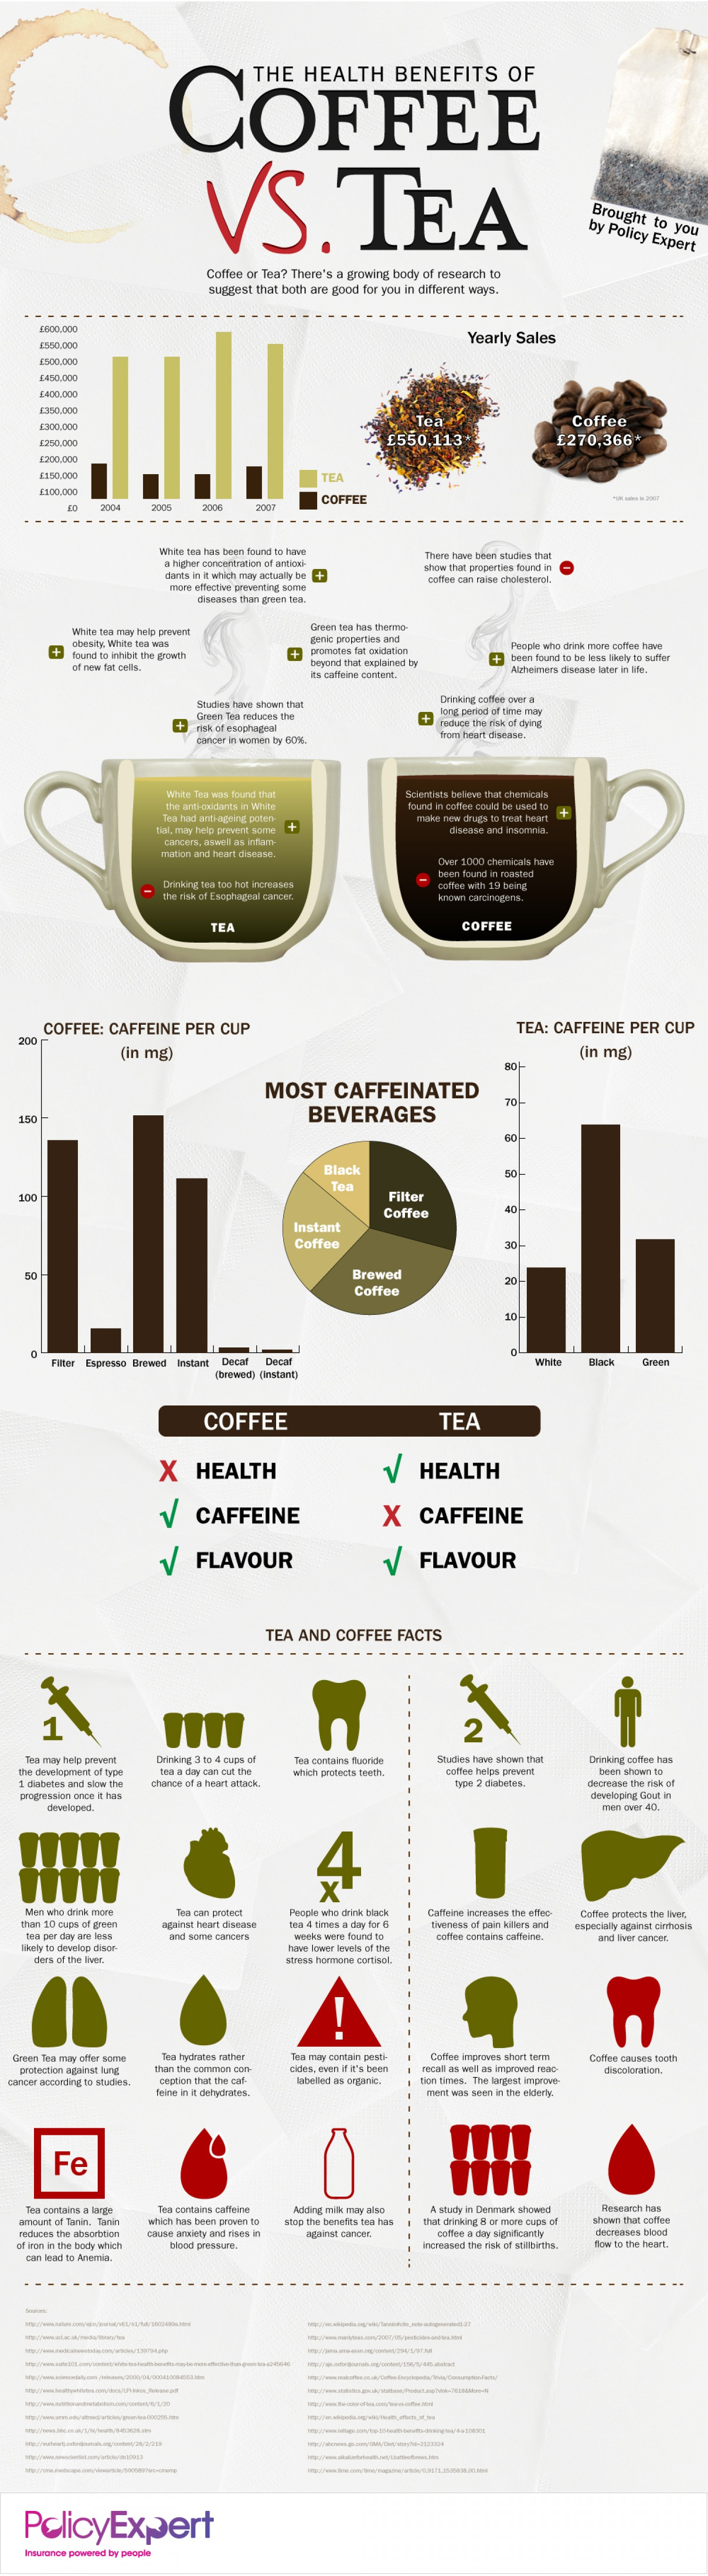 the-health-benefits-of-coffee-vs-tea_50290b546445d_w1500